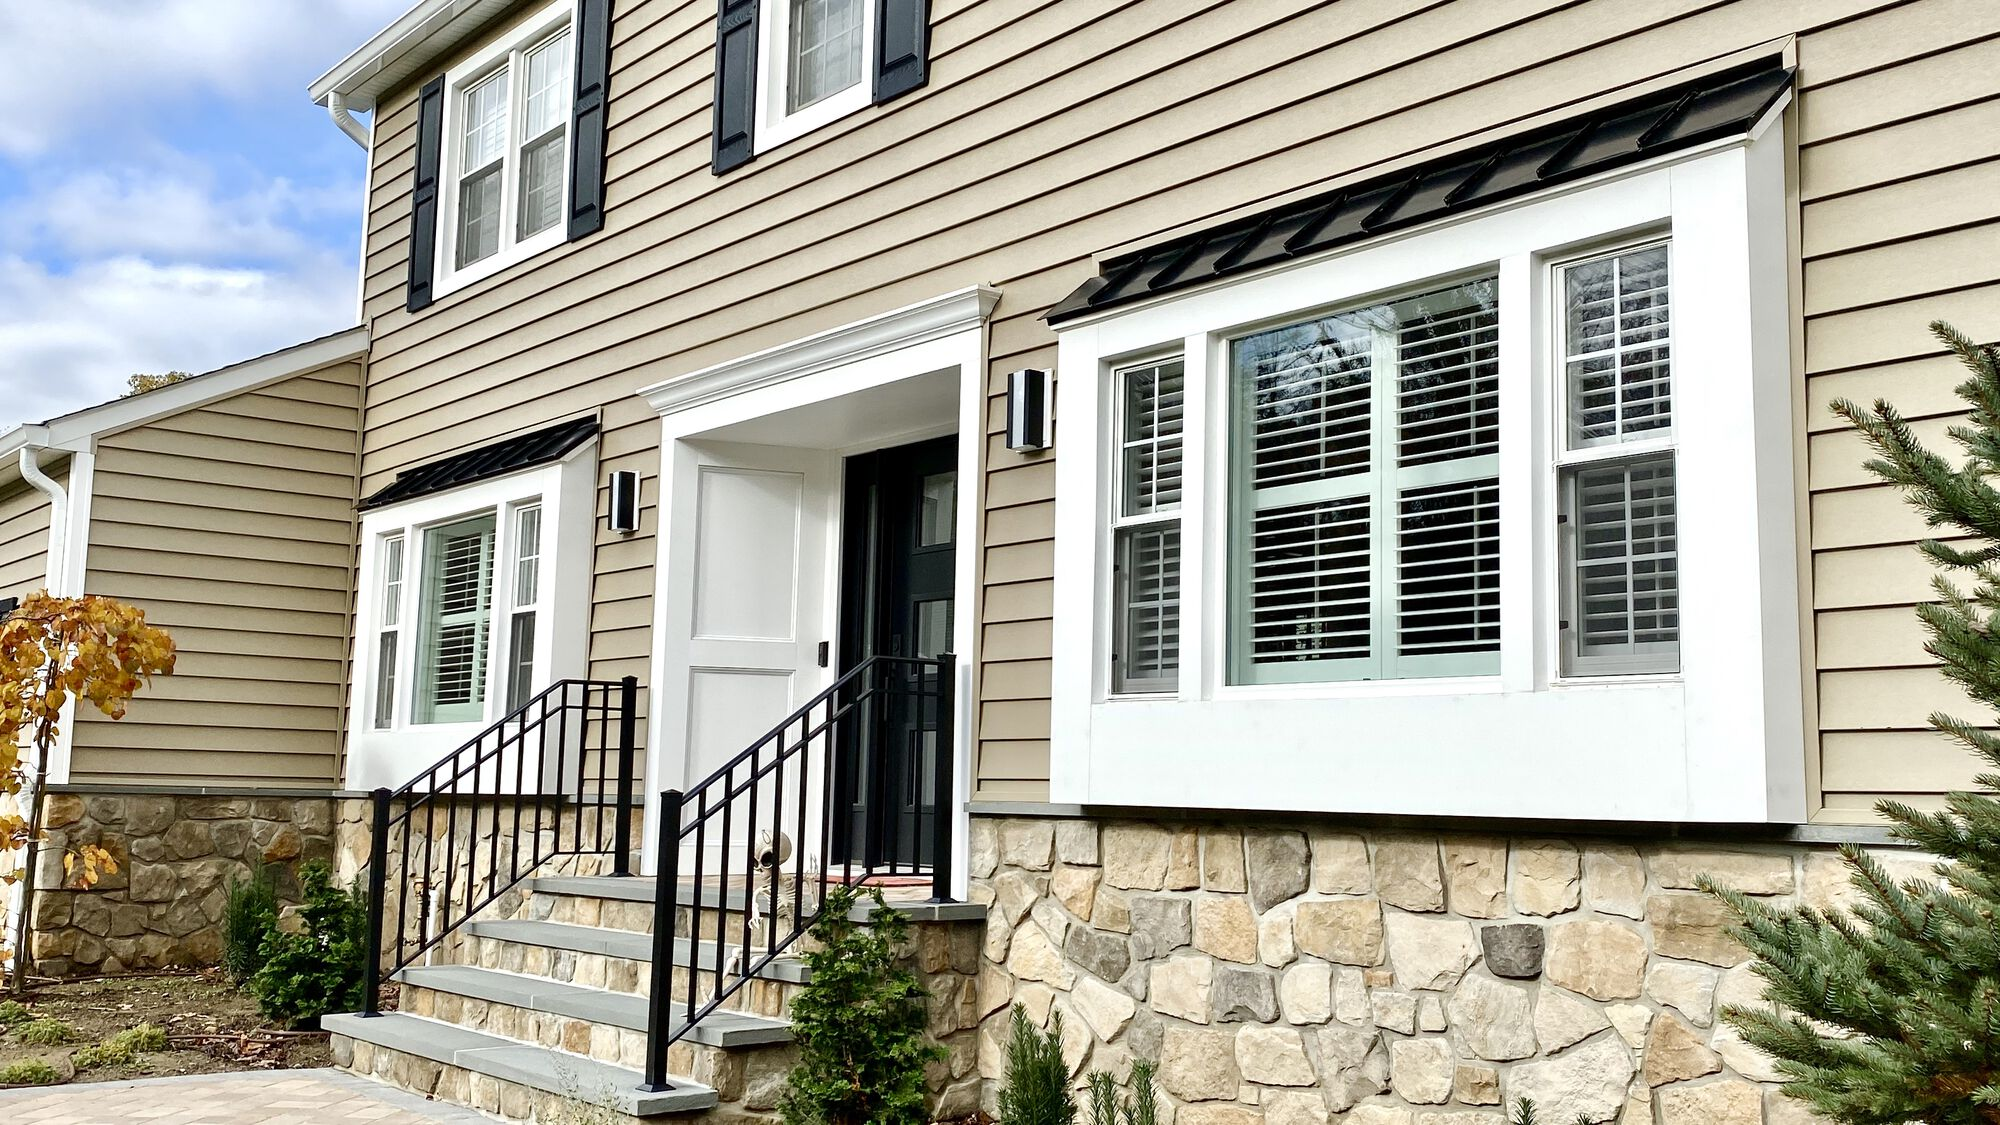 Vinyl Thermopane Replacement Window Installation with Prodigy Insulated Solid Backed Siding in Randolph, Morris County North Jersey